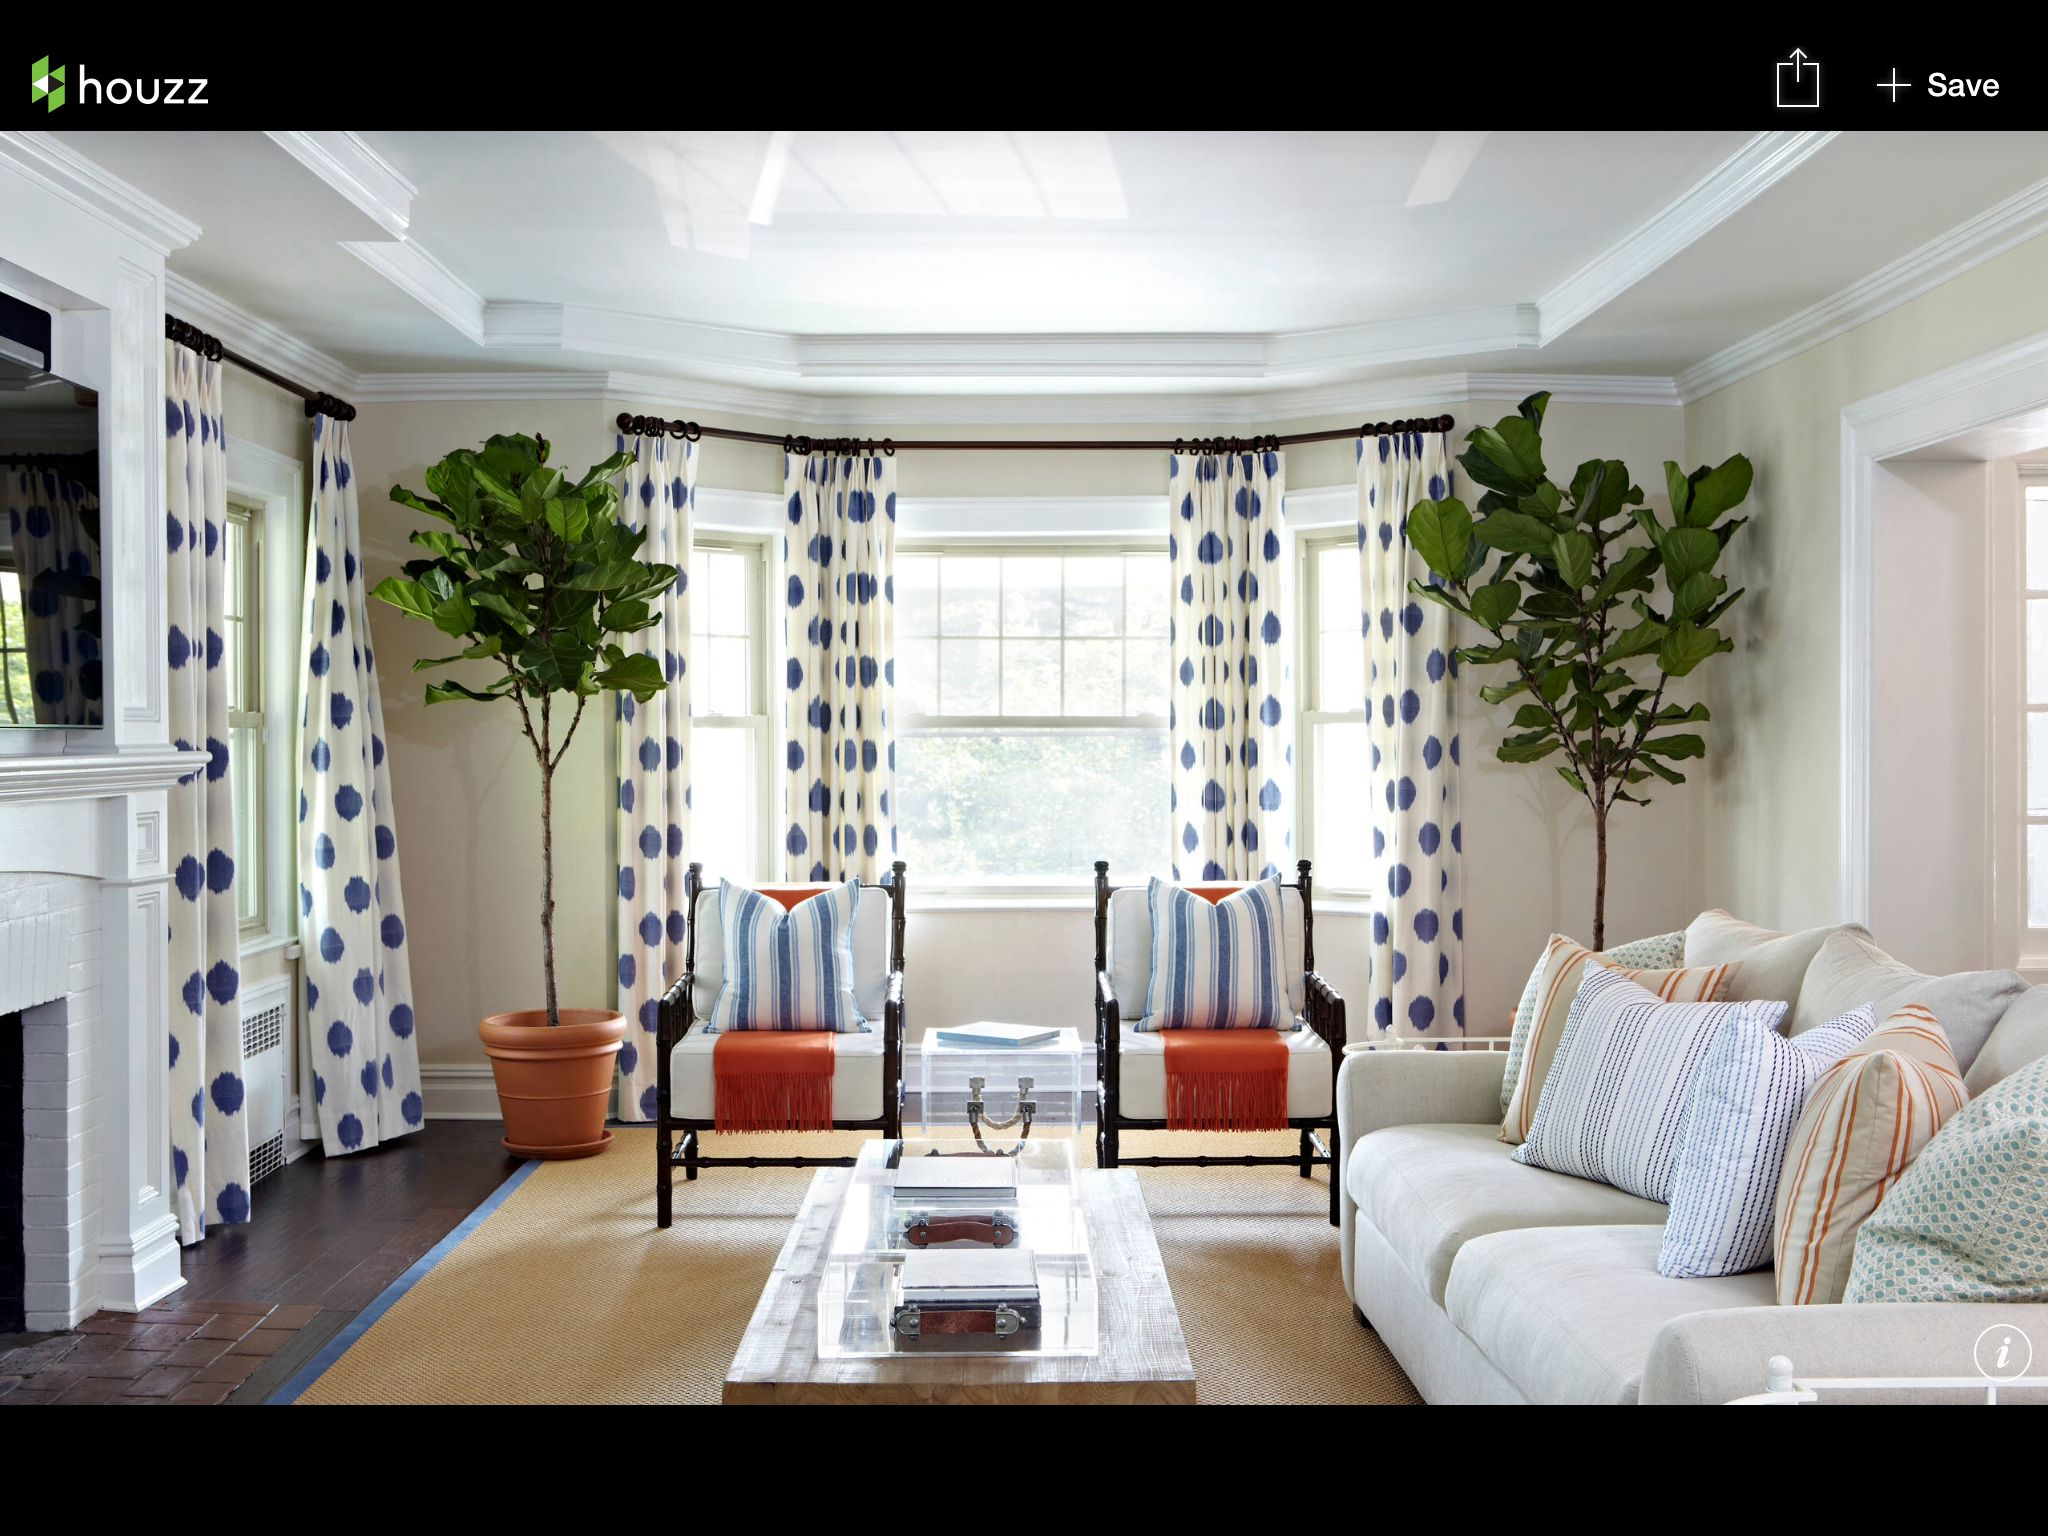 Living Room Design Houzz Best Living Room Inspiration From Houzz  House Inspiration  Pinterest Inspiration